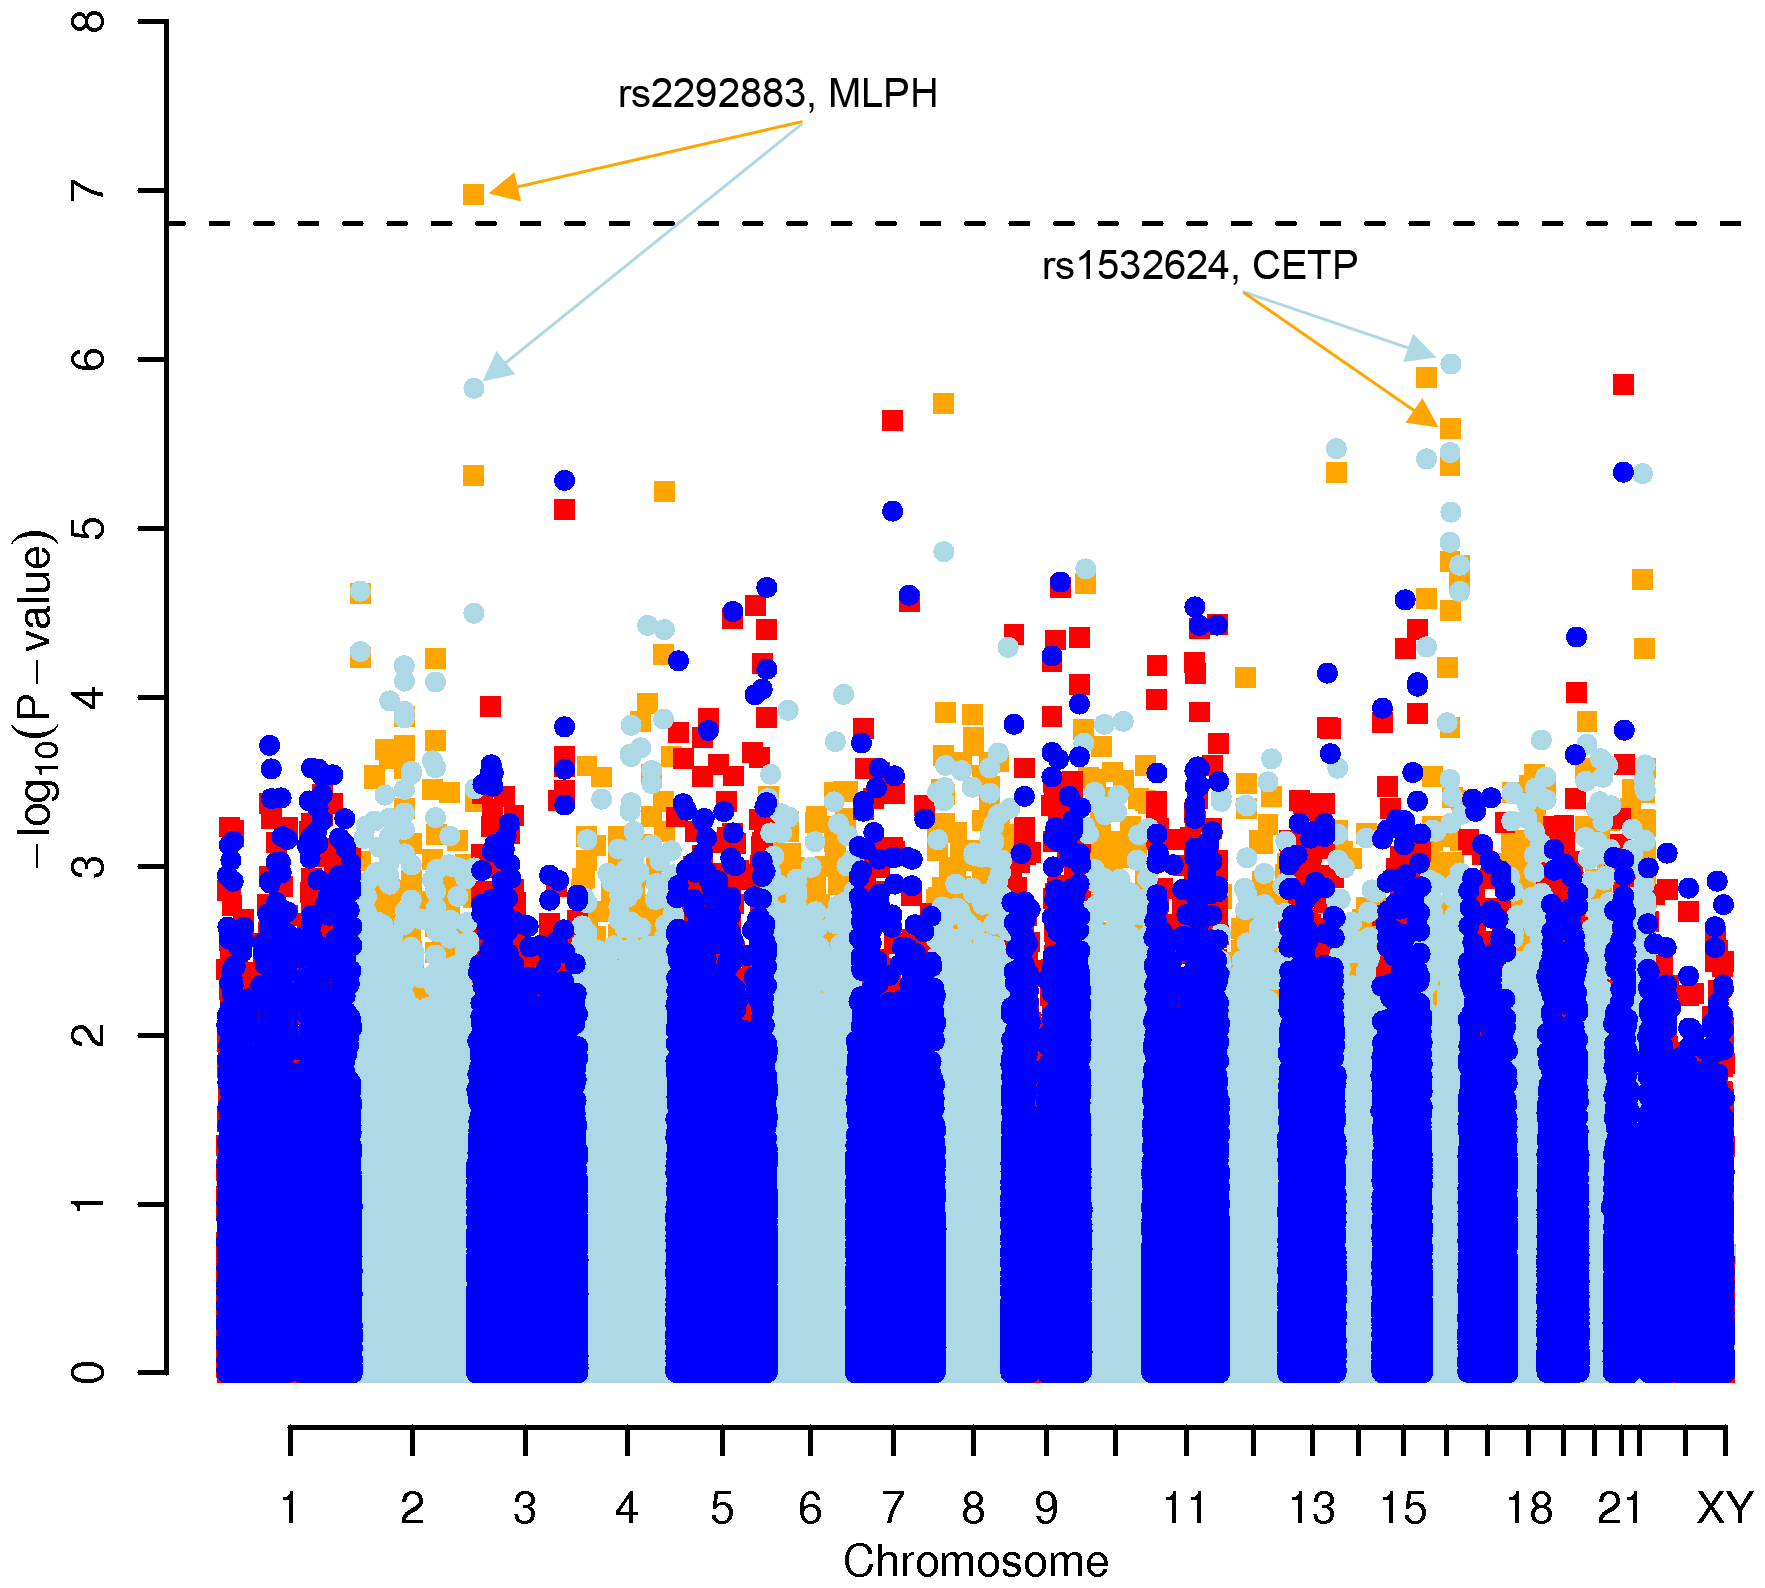 Manhattan plot of genome-wide effects on HDL cholesterol levels in the Swedish discovery cohort.